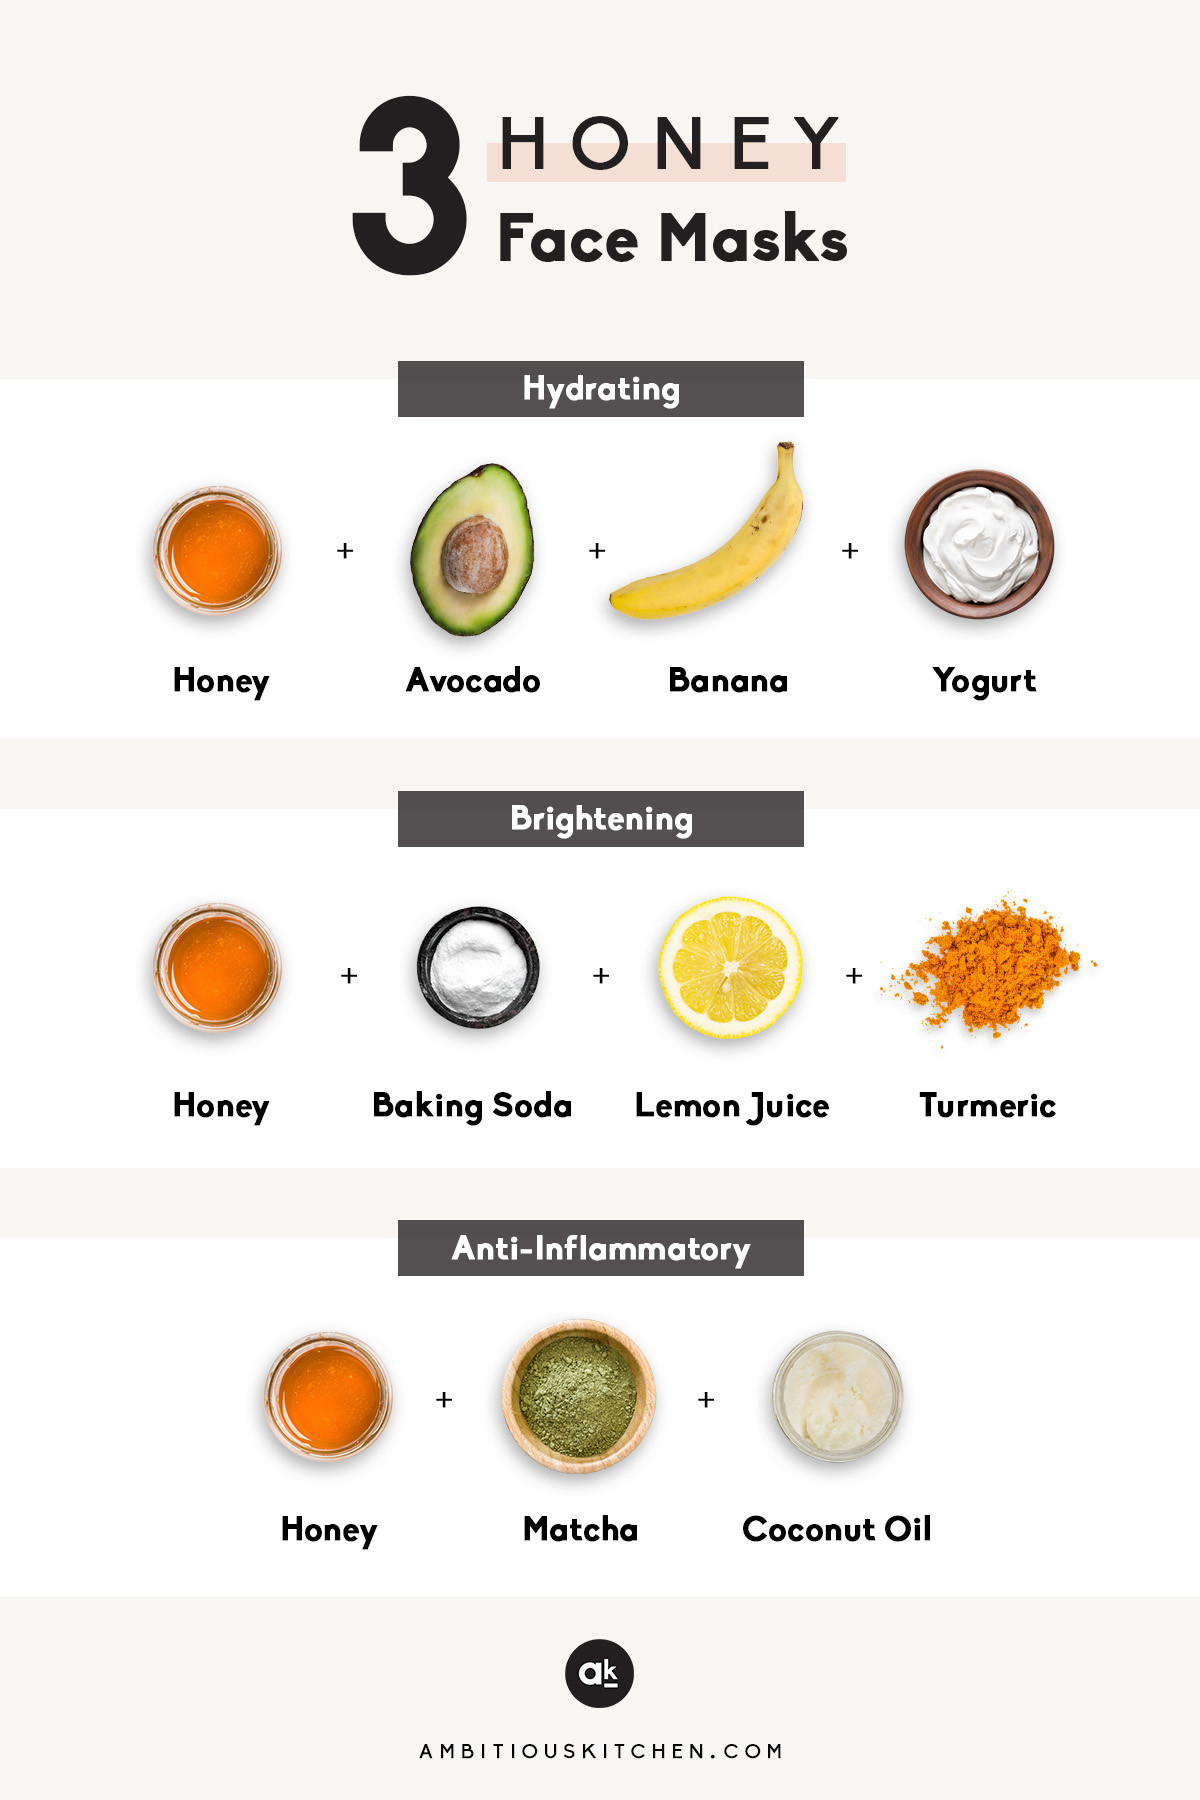 Best ideas about DIY Face Mask Recipes . Save or Pin 3 DIY Honey Face Masks video Now.